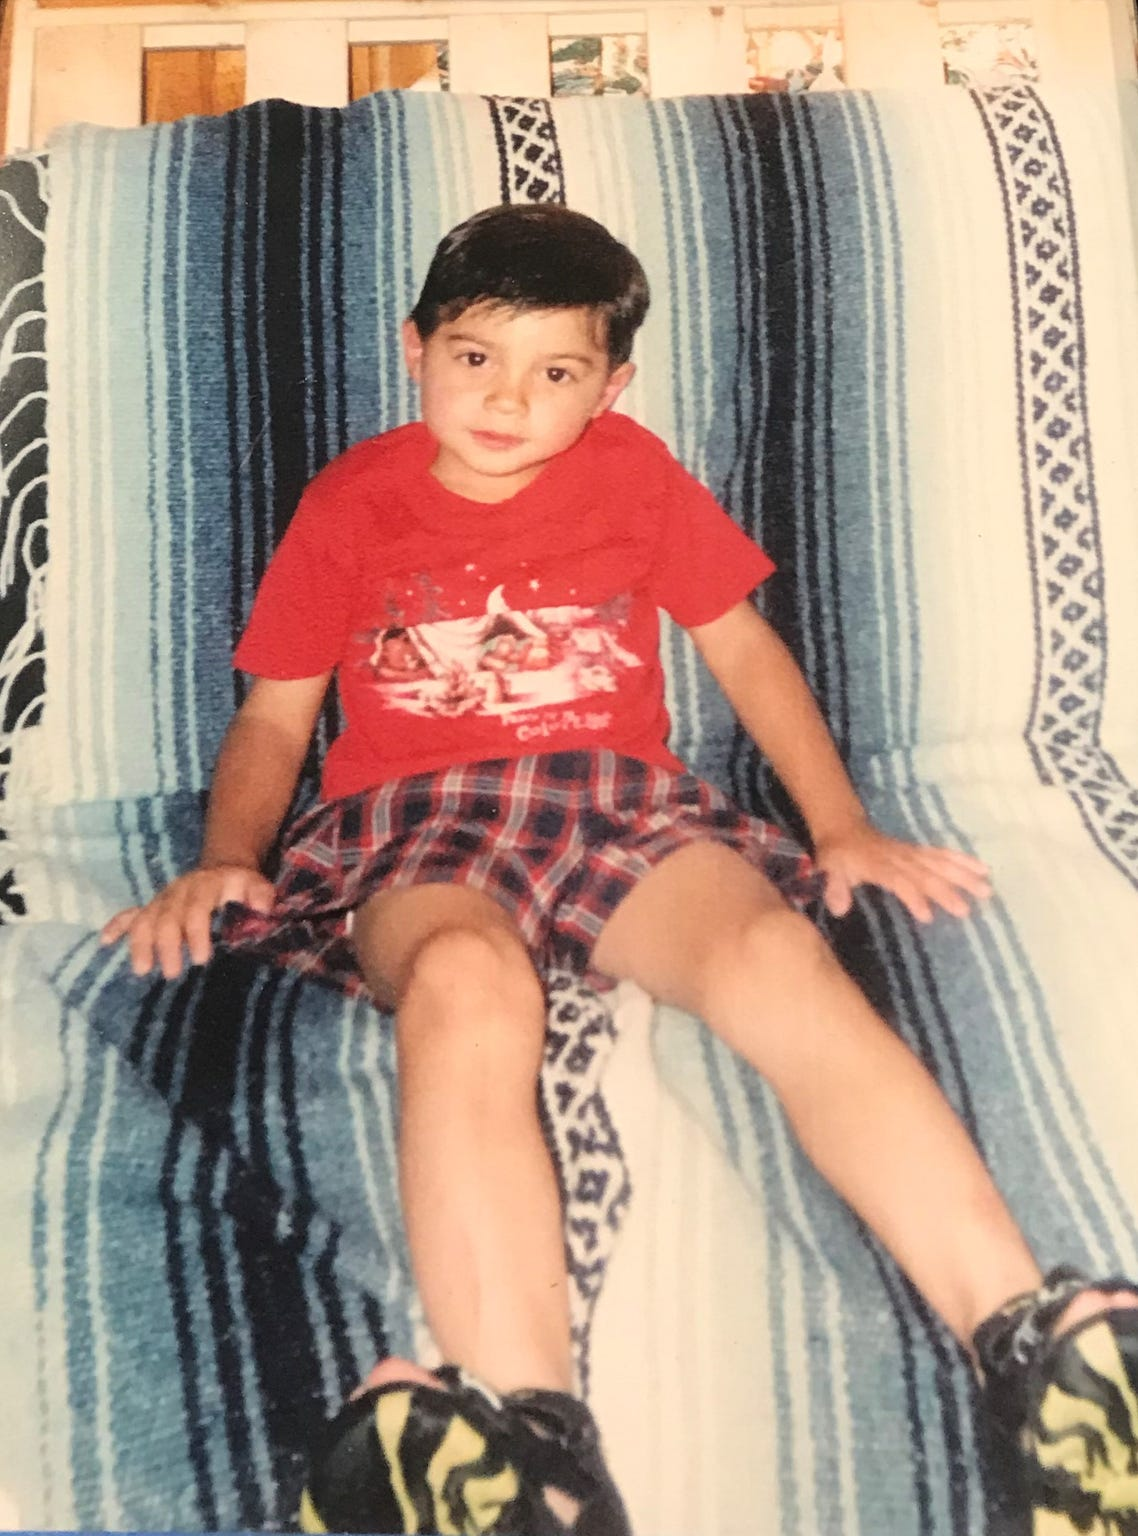 This is a photo taken of 3-year-old Jaryd Atadero the day before he went missing nearly 20 years ago.